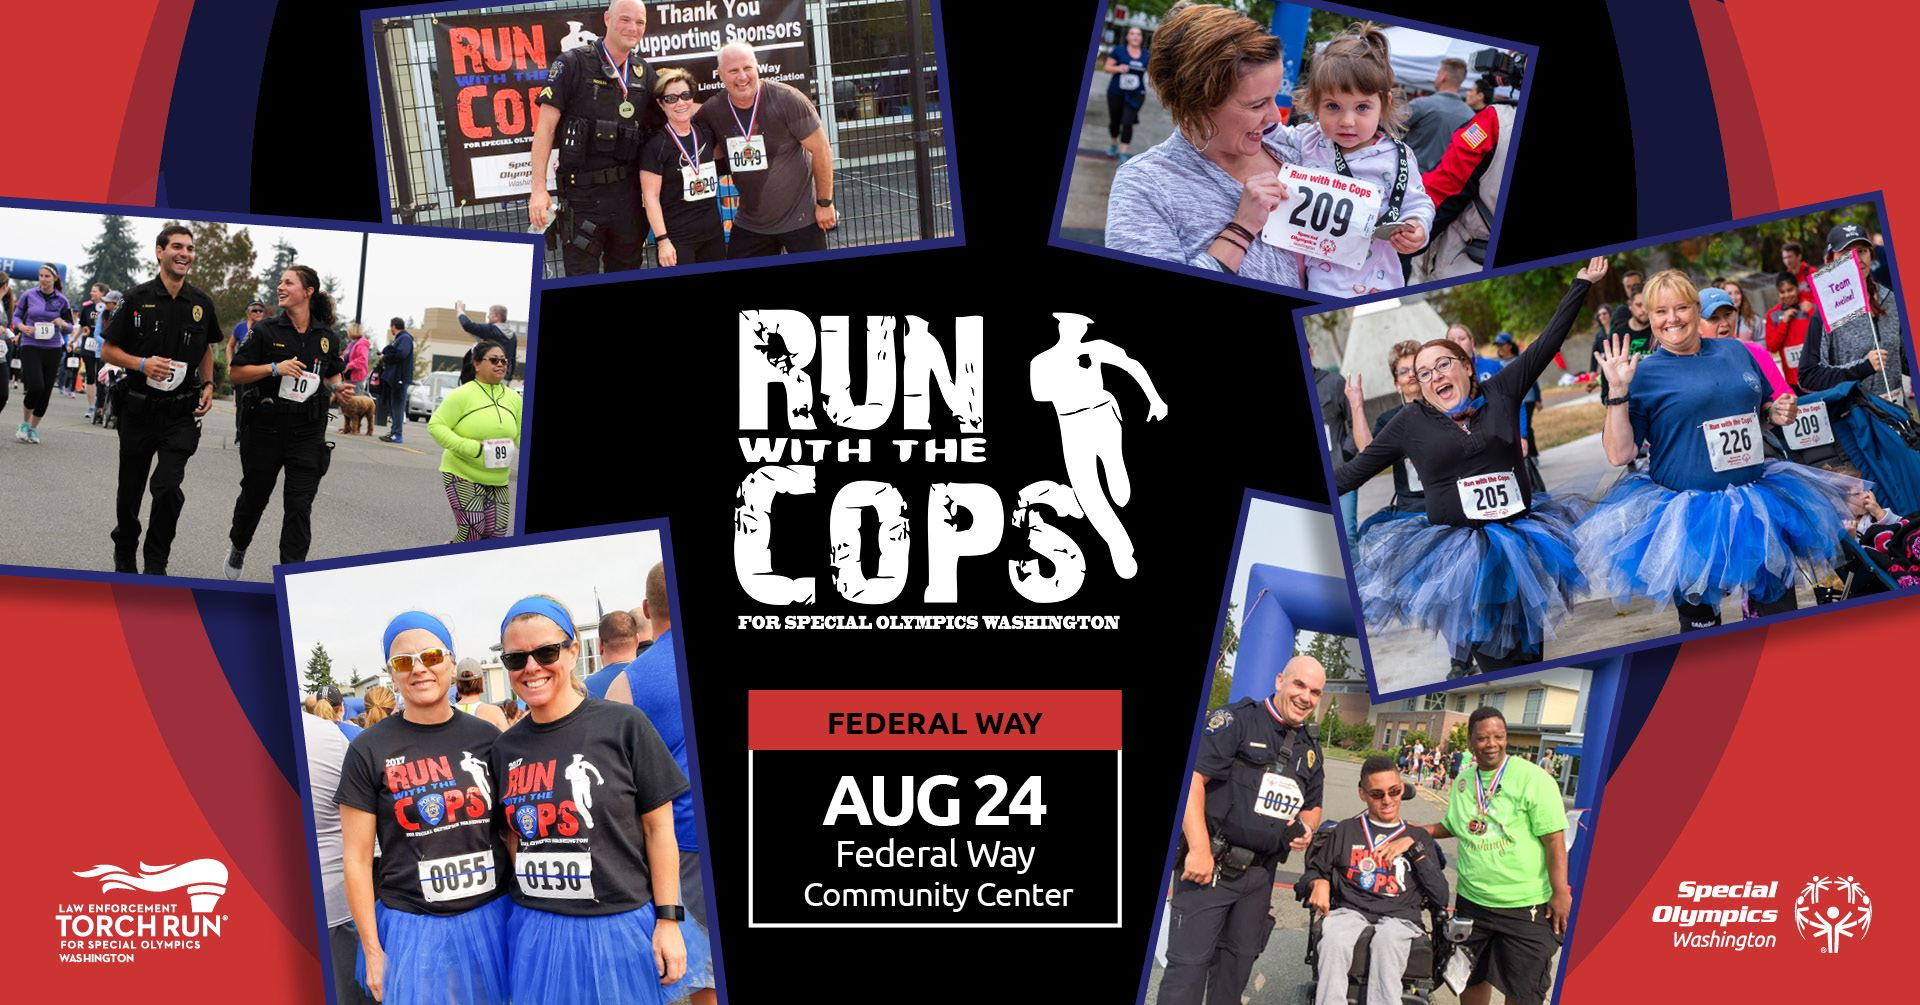 Run With The Cops 5k Run/Walk in Federal Way | Federal Way